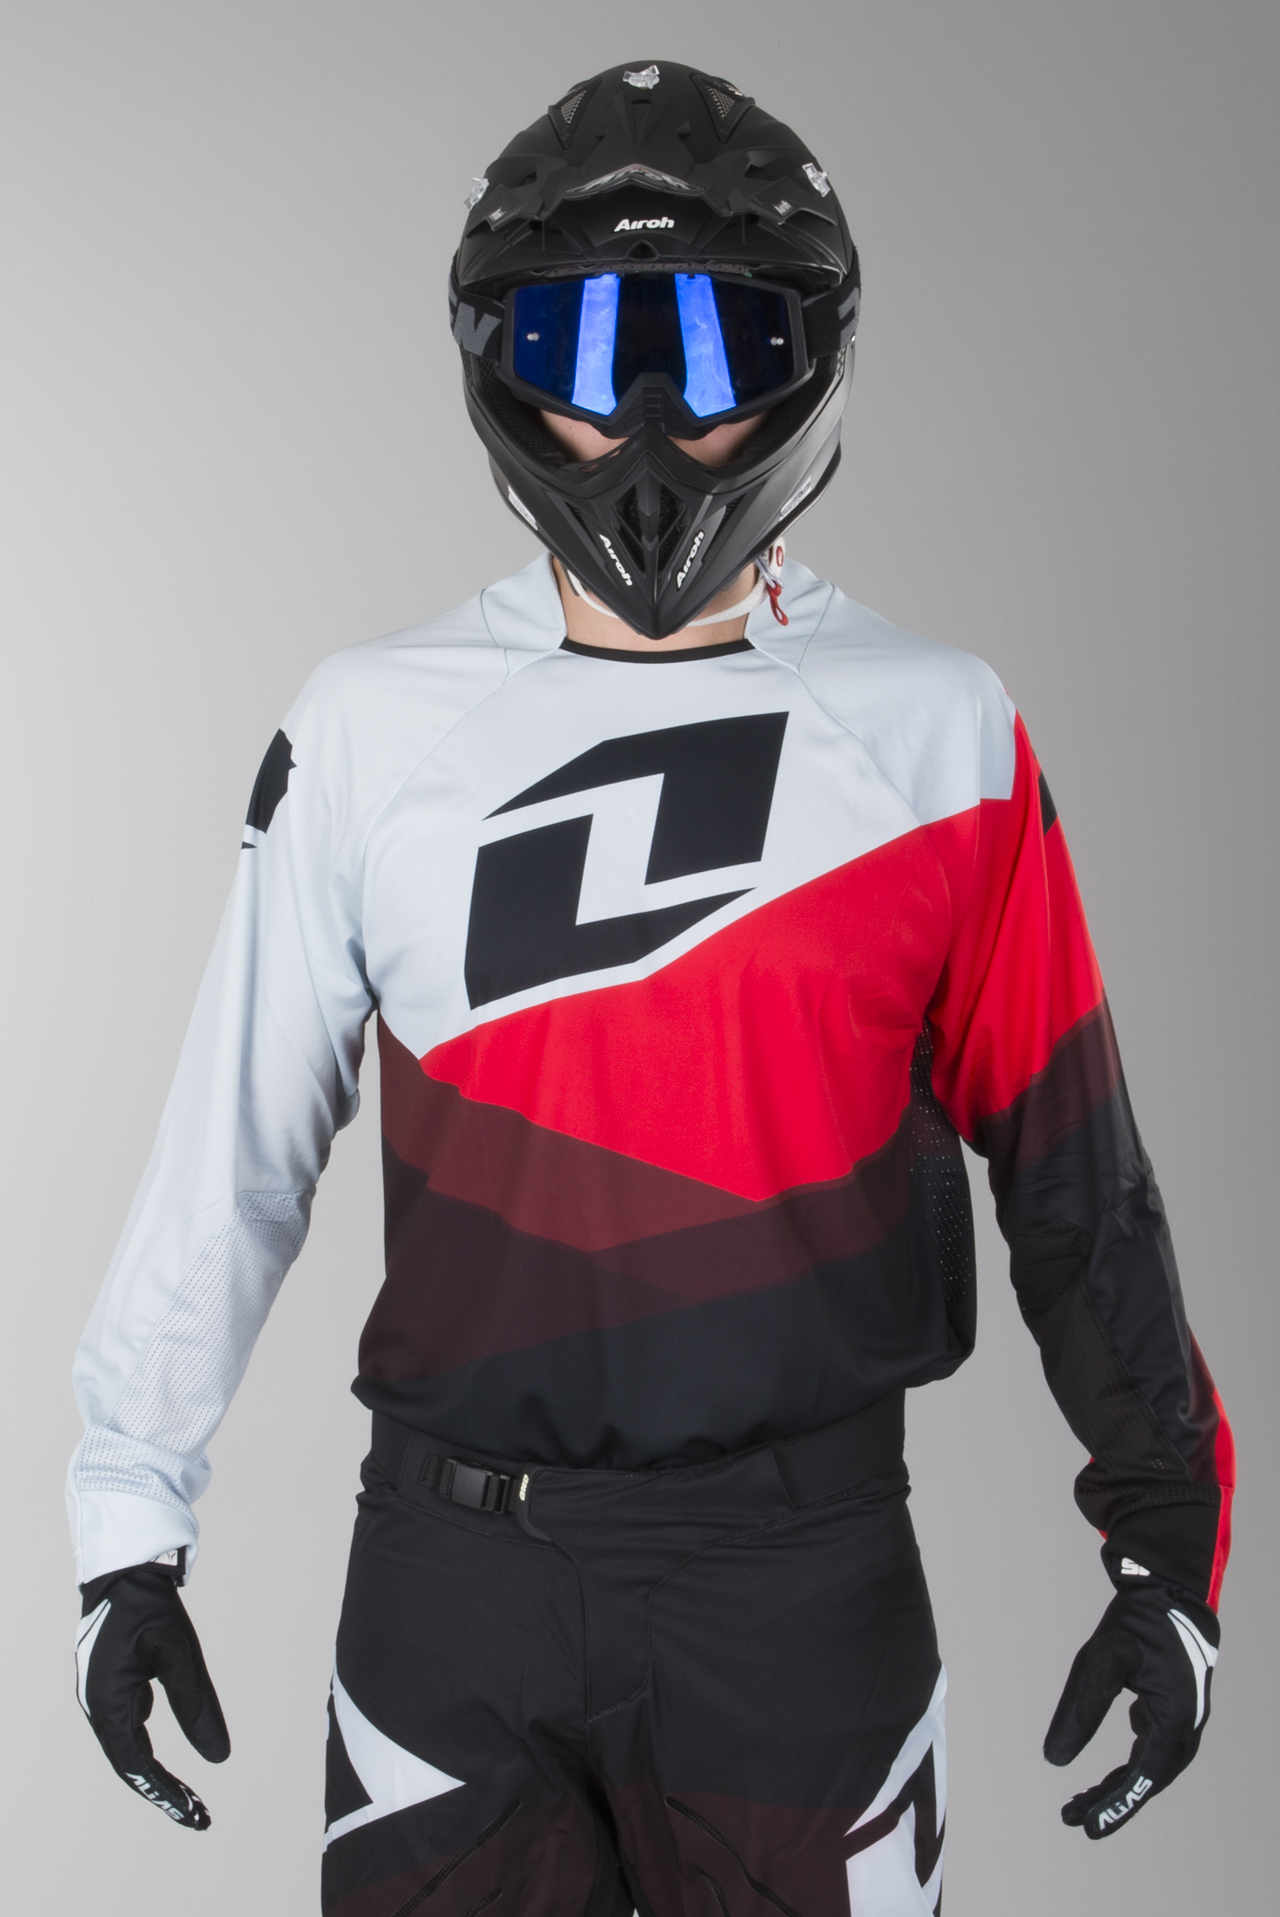 2016 ONE INDUSTRIES ATOM VENTED MOTOCROSS KIT RED WHITE BLUE pants jersey